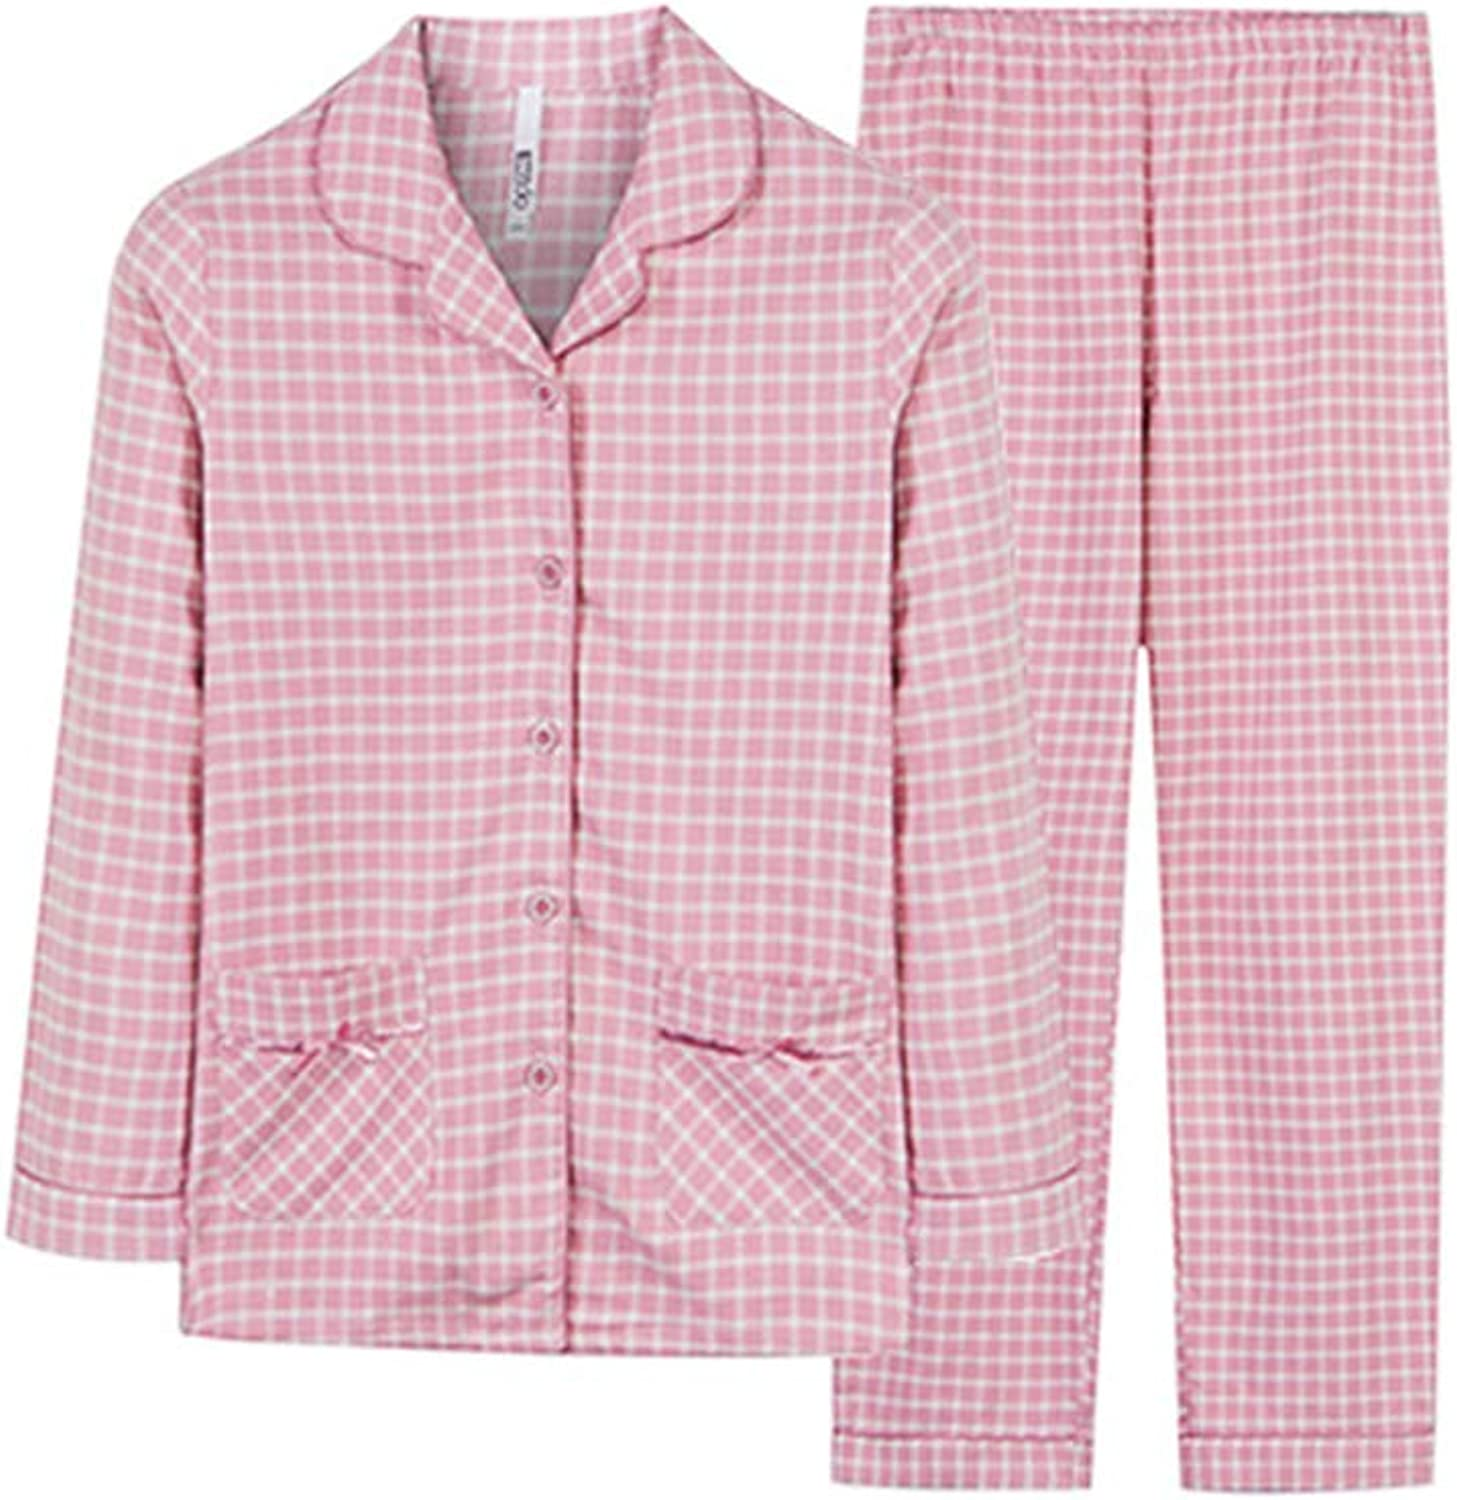 Nightgowns Pajamas Couple LongSleeved Cotton Pajamas Woven Grinds Home Pajamas Women Spring and Autumn Cotton Pajamas Home Service Pajamas Set Winter (color   Pink, Size   XL (67))